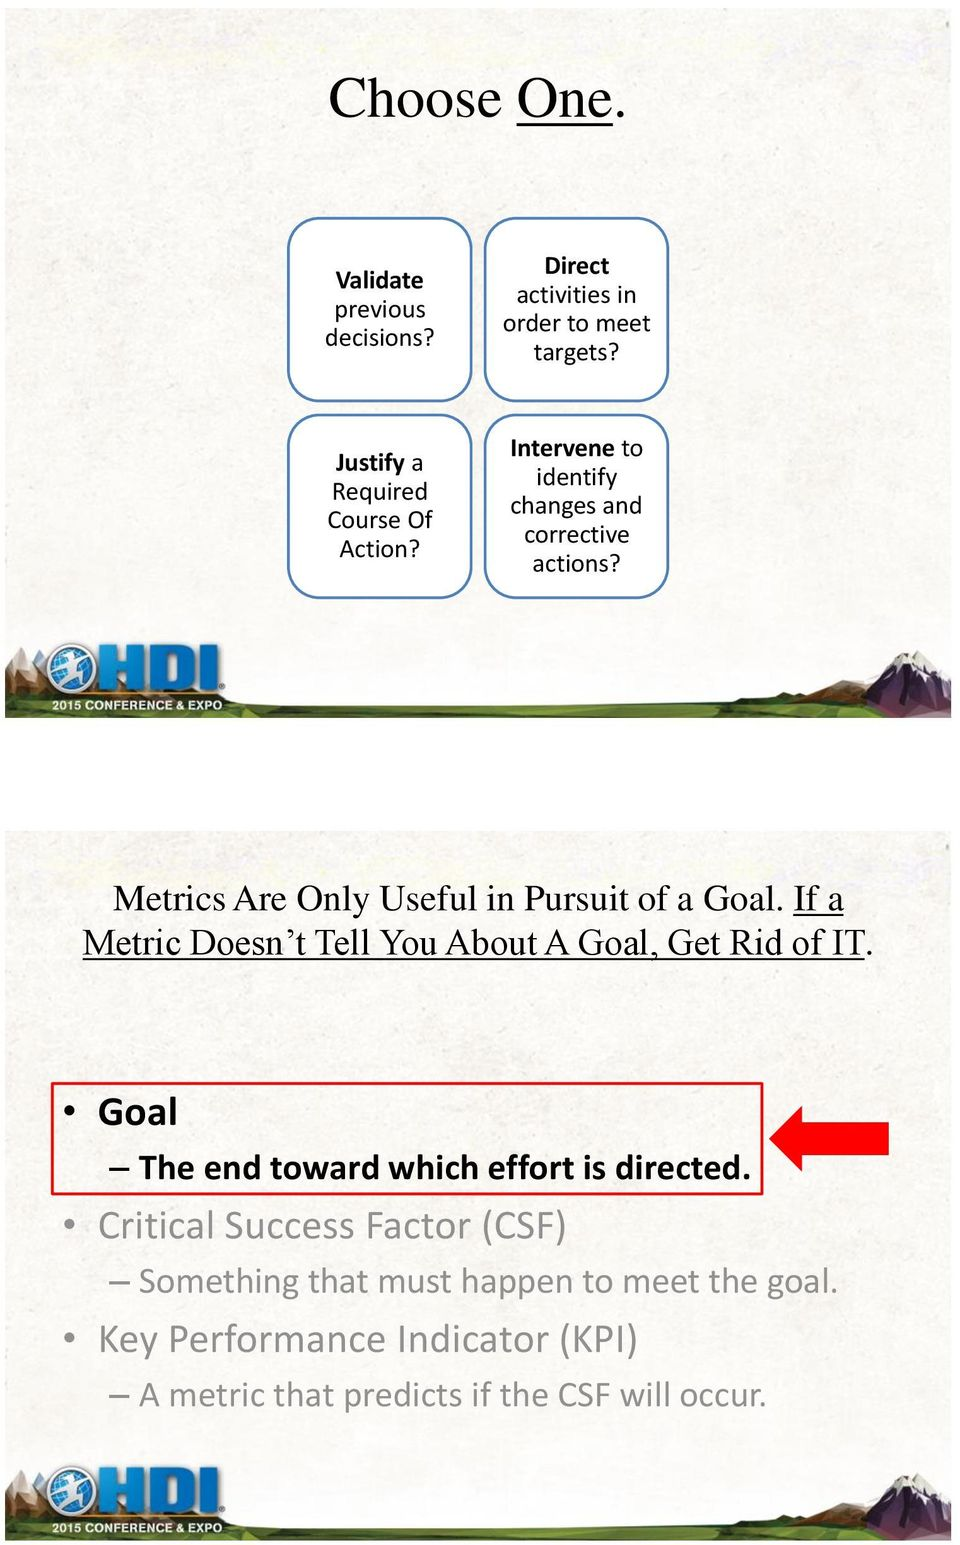 Metrics Are Only Useful in Pursuit of a Goal. If a Metric Doesn t Tell You About A Goal, Get Rid of IT.